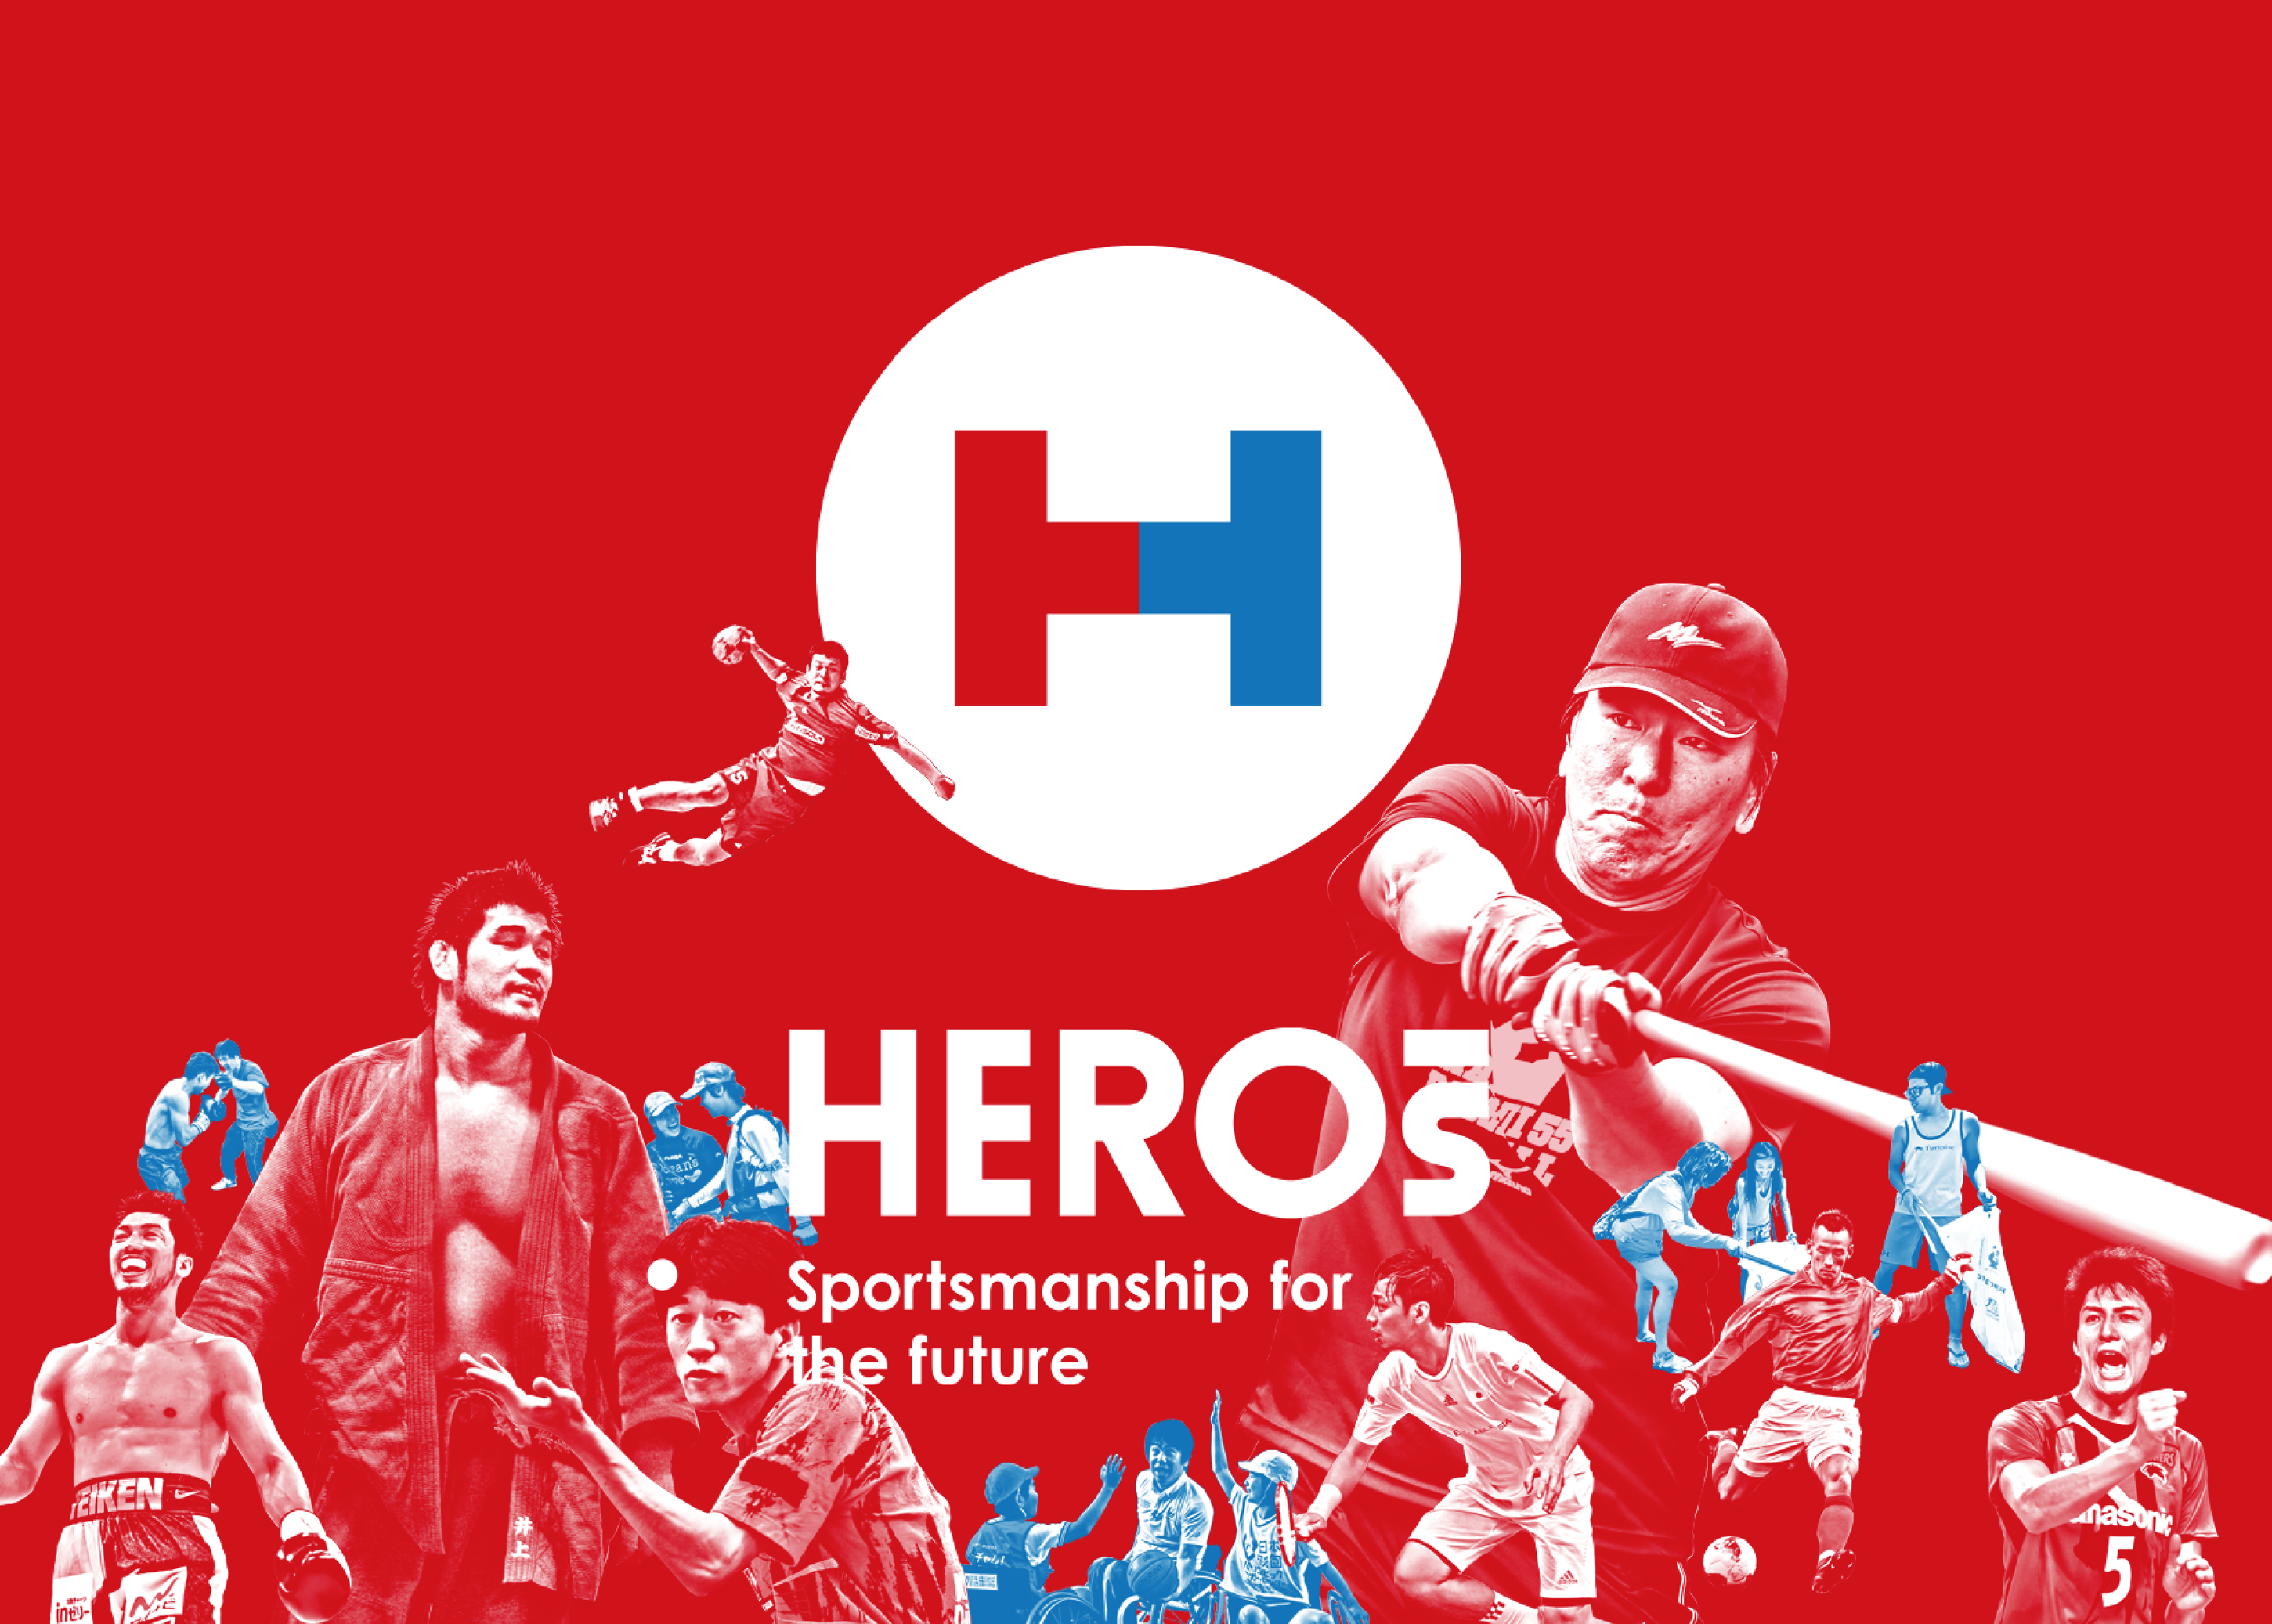 HEROs Sportsmanship for the futureのキービジュアル